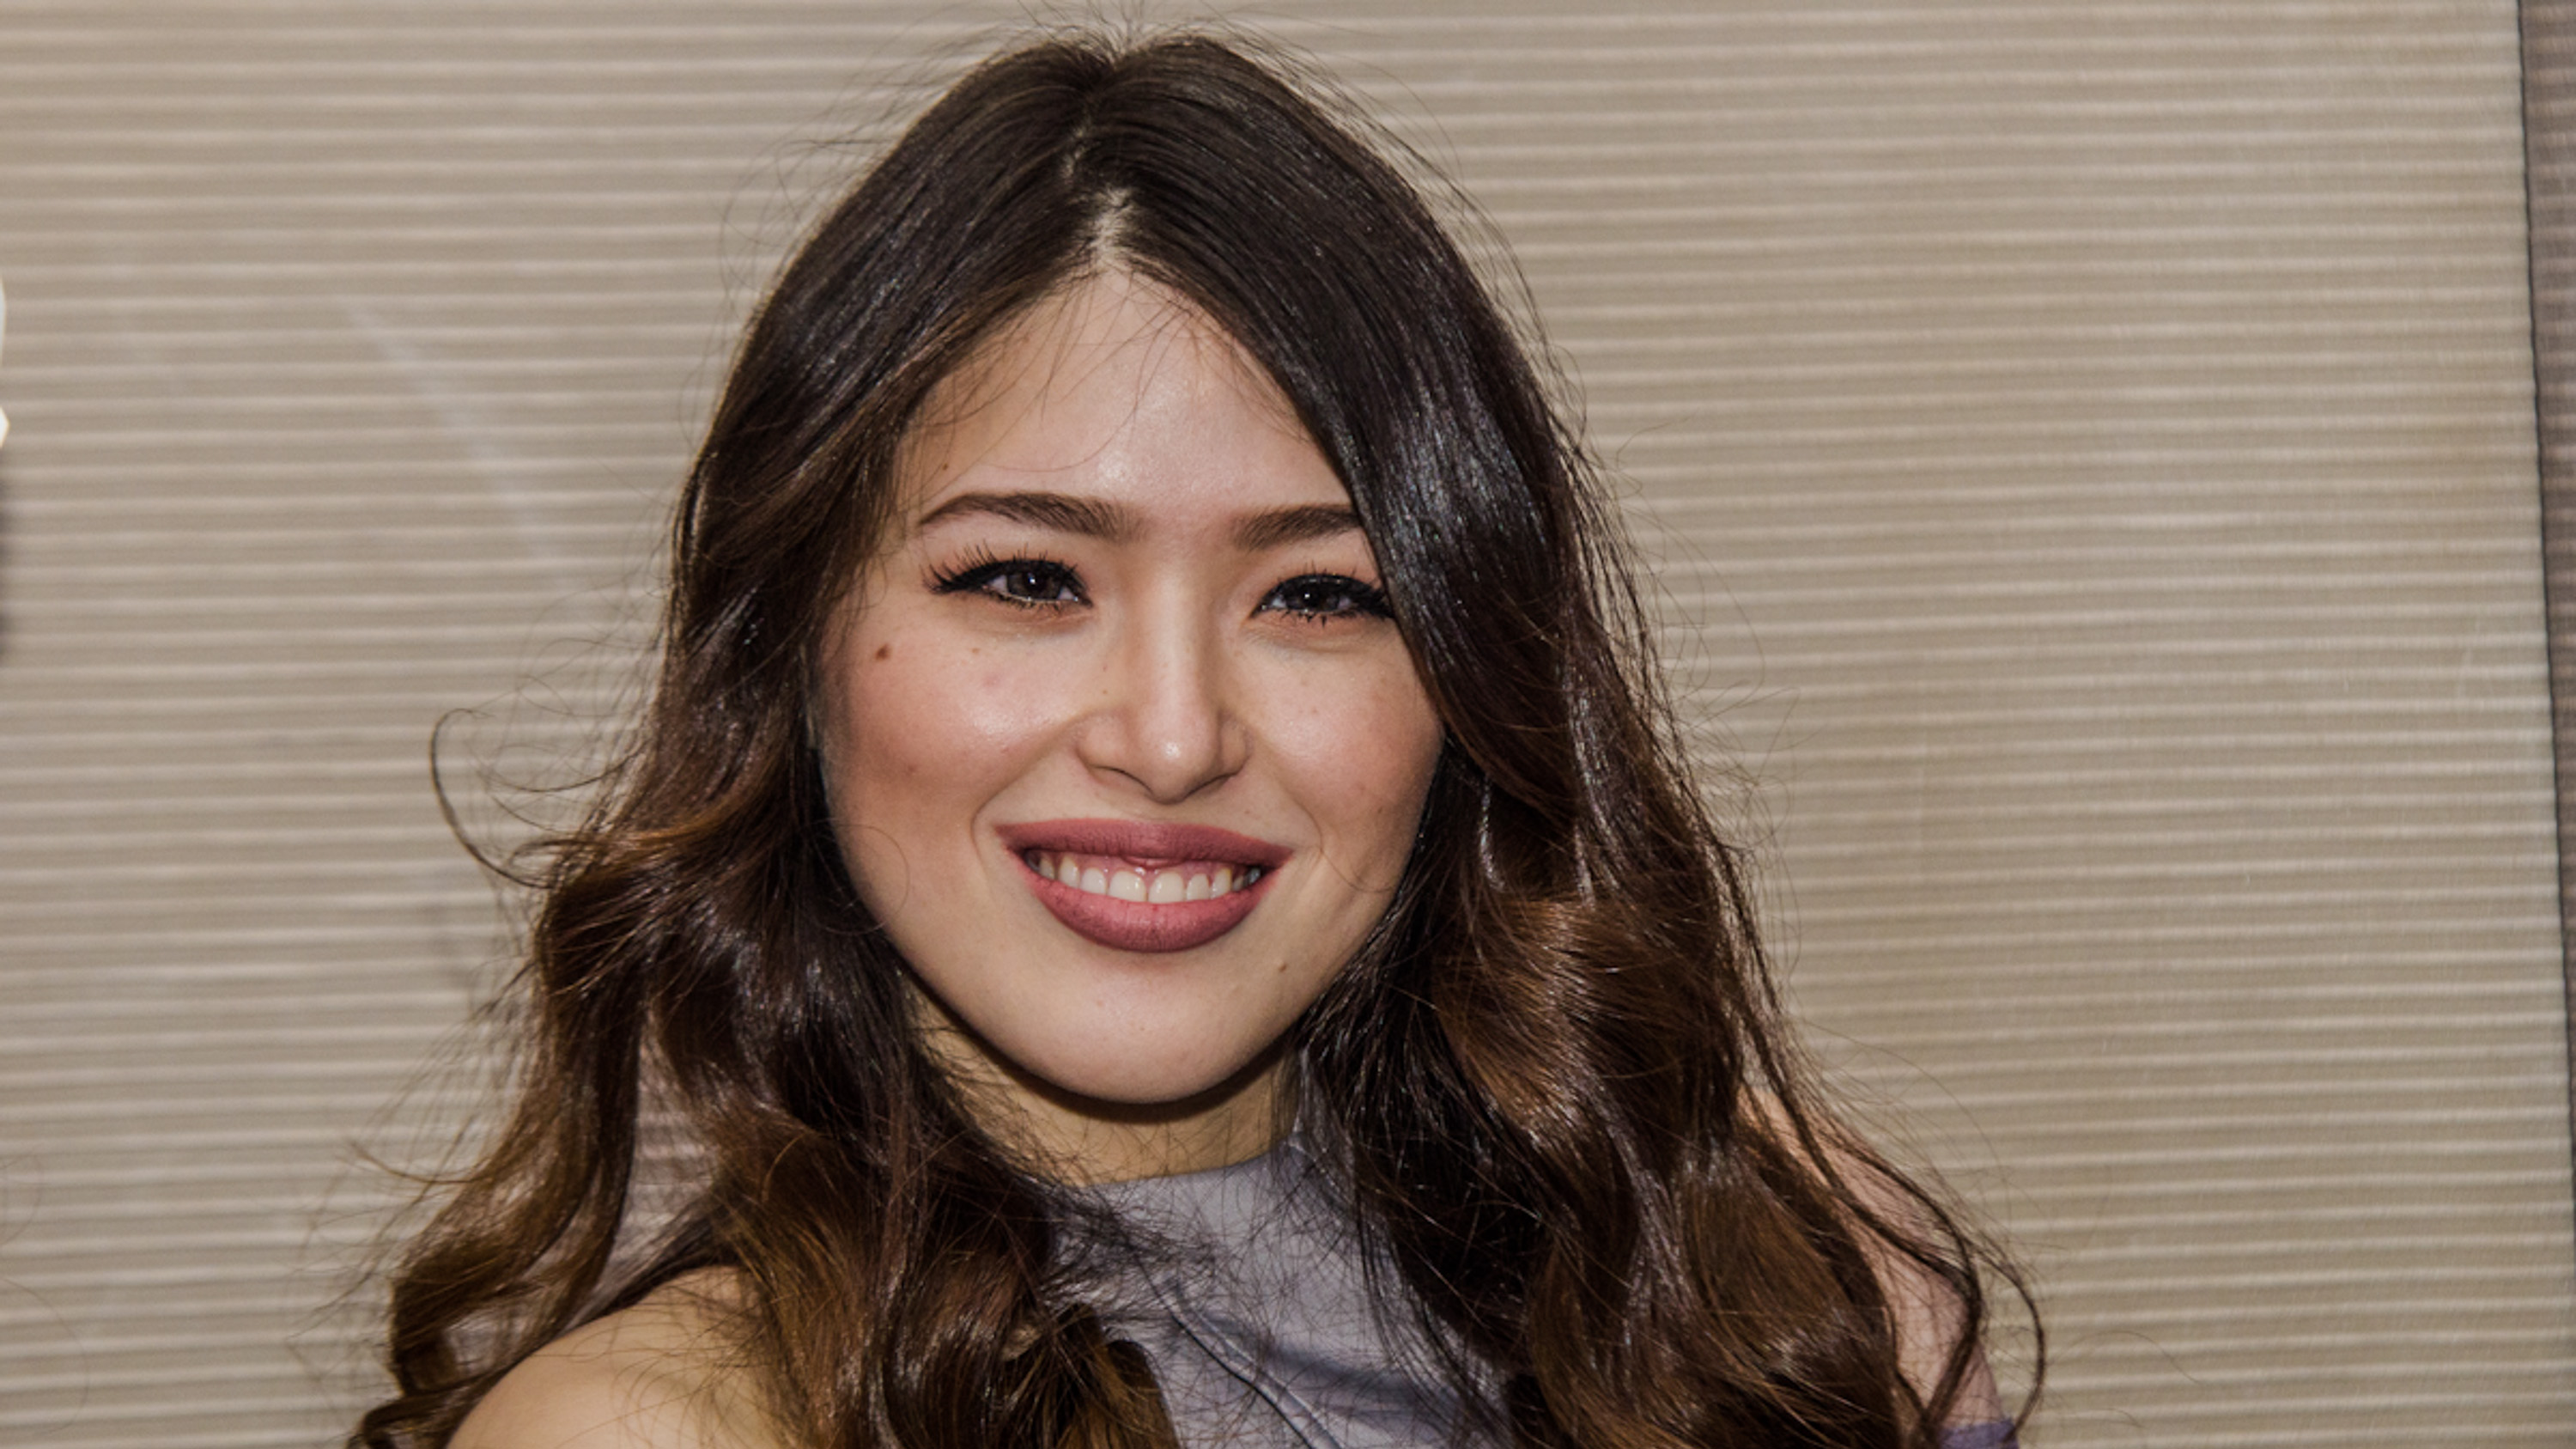 MOM-TO-BE. Kylie Padilla says she is excited and nervous, as she prepares to be a mom for the first time this year. Photo by Rob Reyes/Rappler